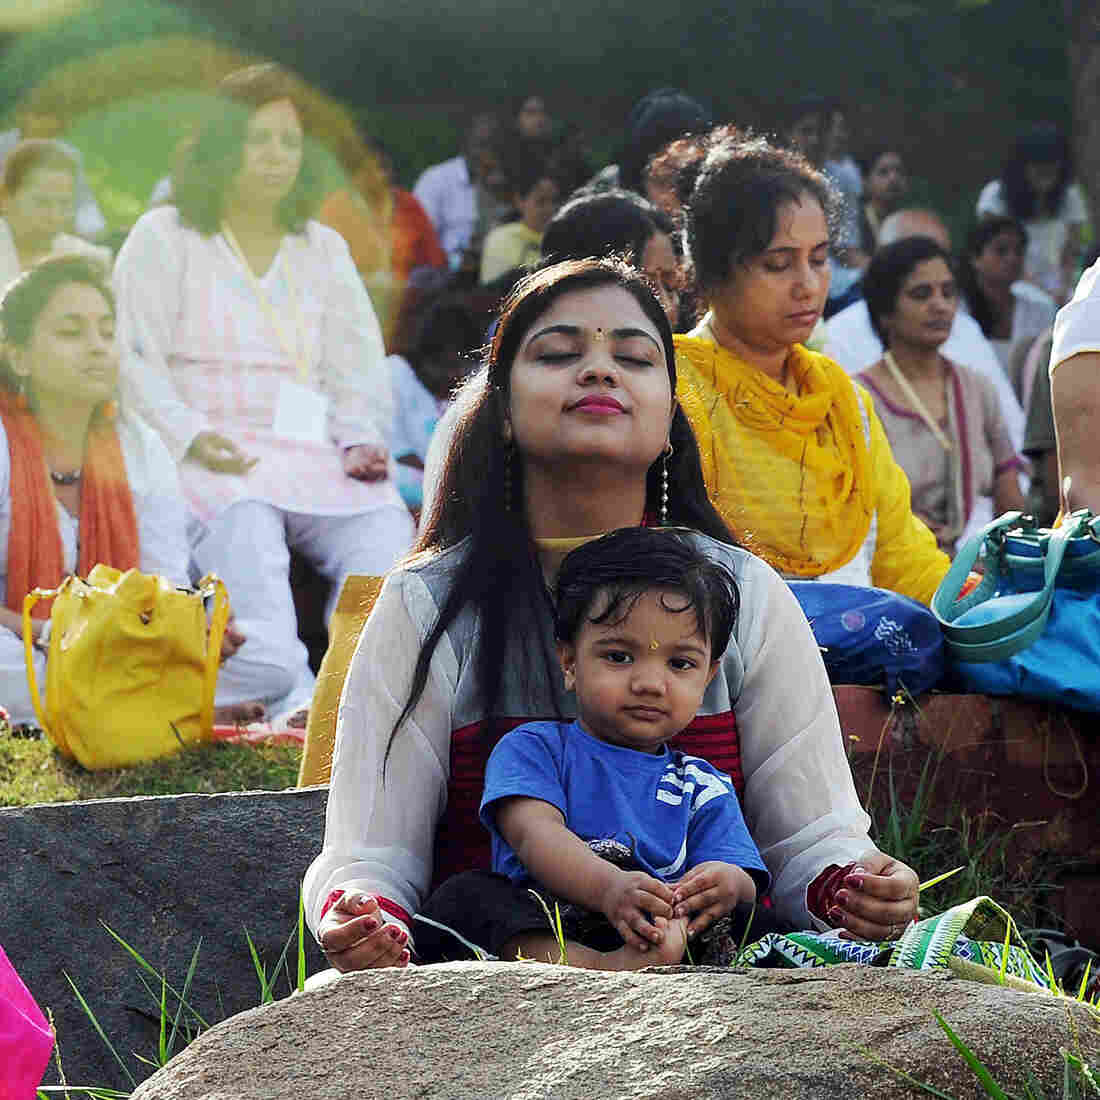 Yogis in Bangalore get ready for the International Yoga Day on June 21.